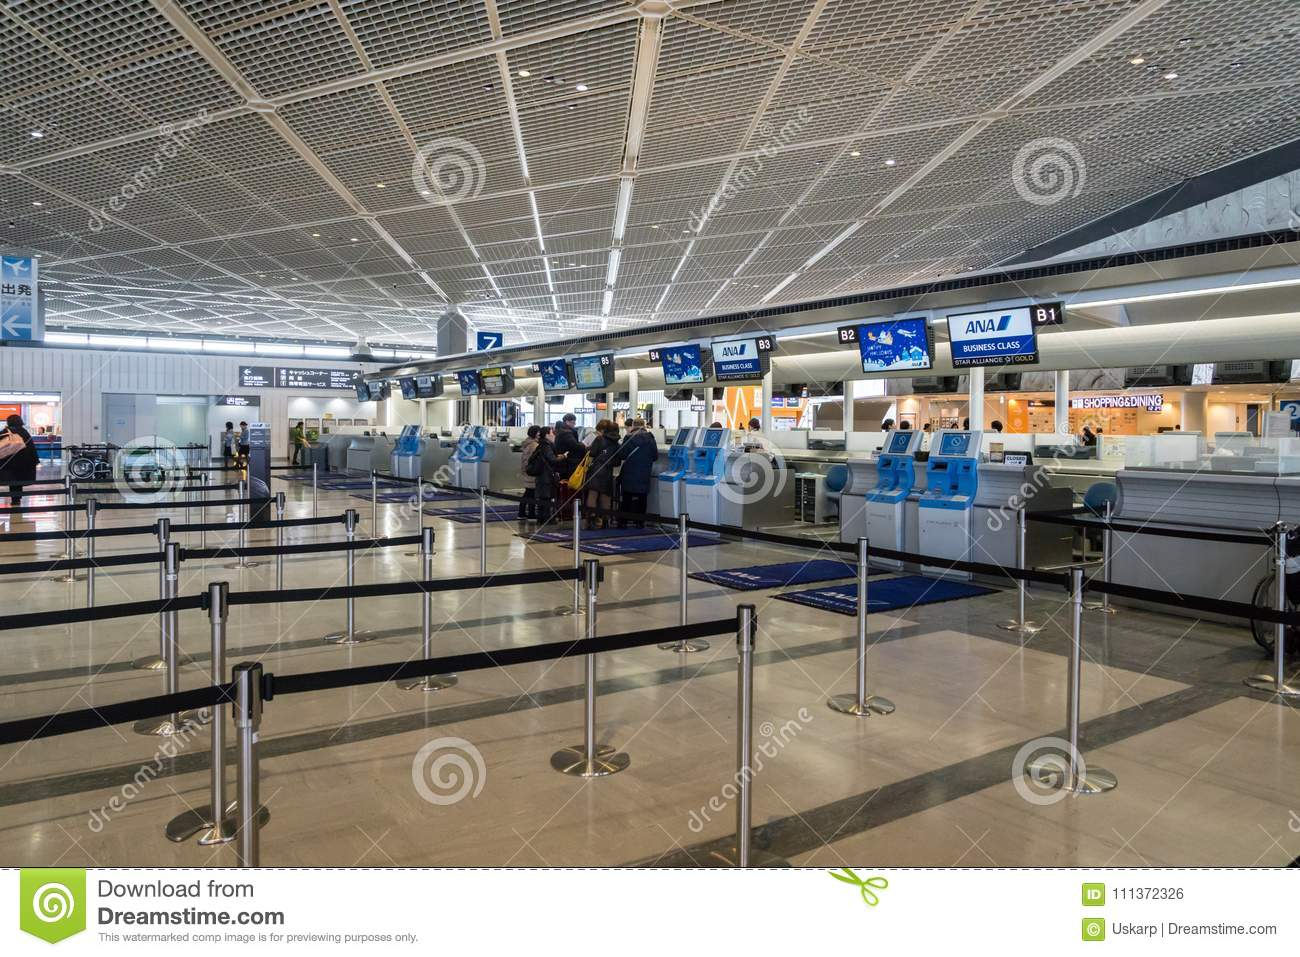 ANA, All Nippon Airways, check-in counter at Narita Airport, Japan.